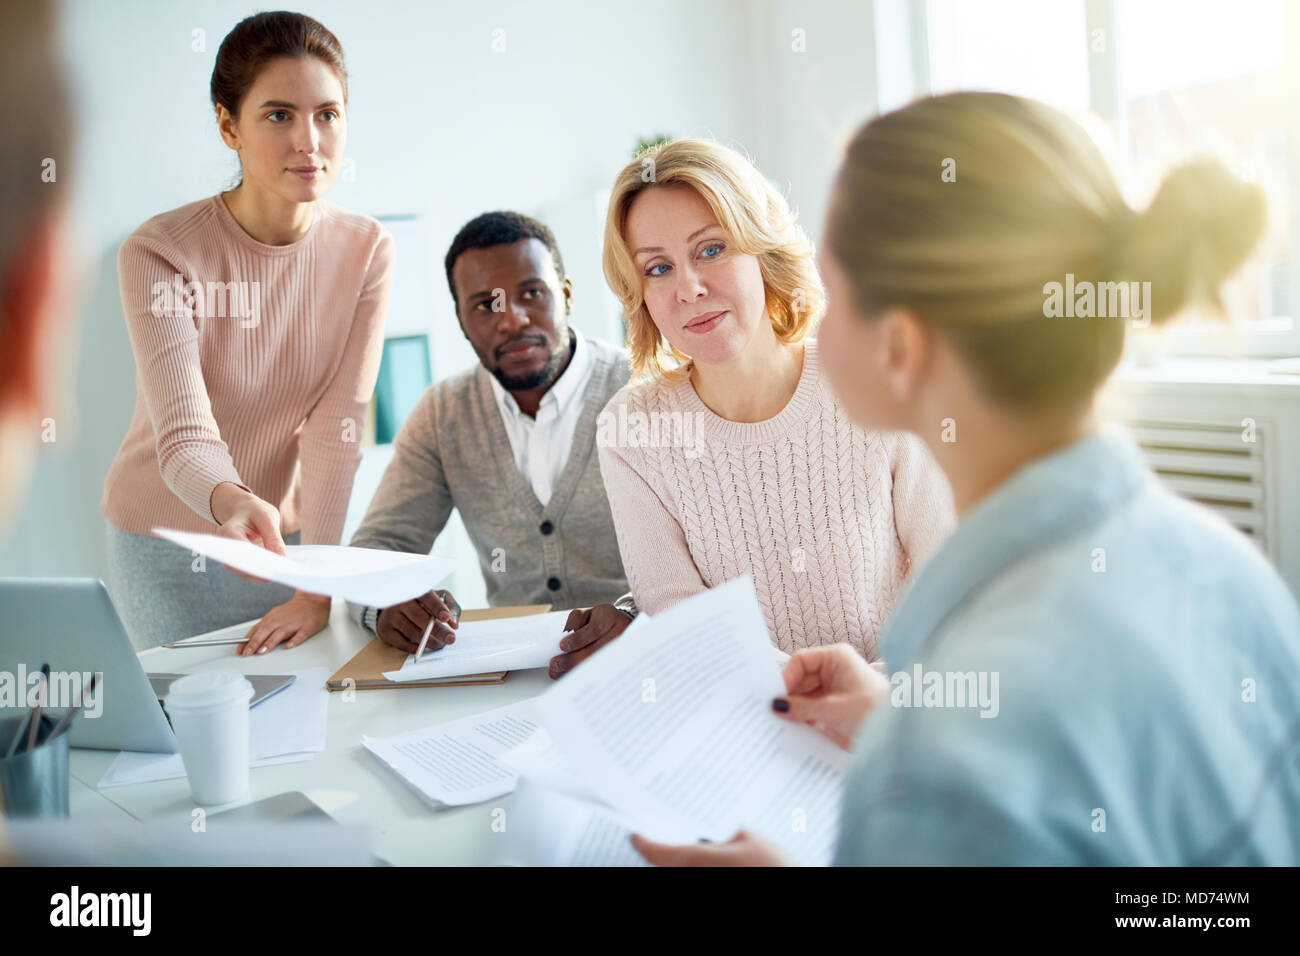 Attractive young manager passing document to fair-haired colleague while having working meeting at spacious open plan office - Stock Image